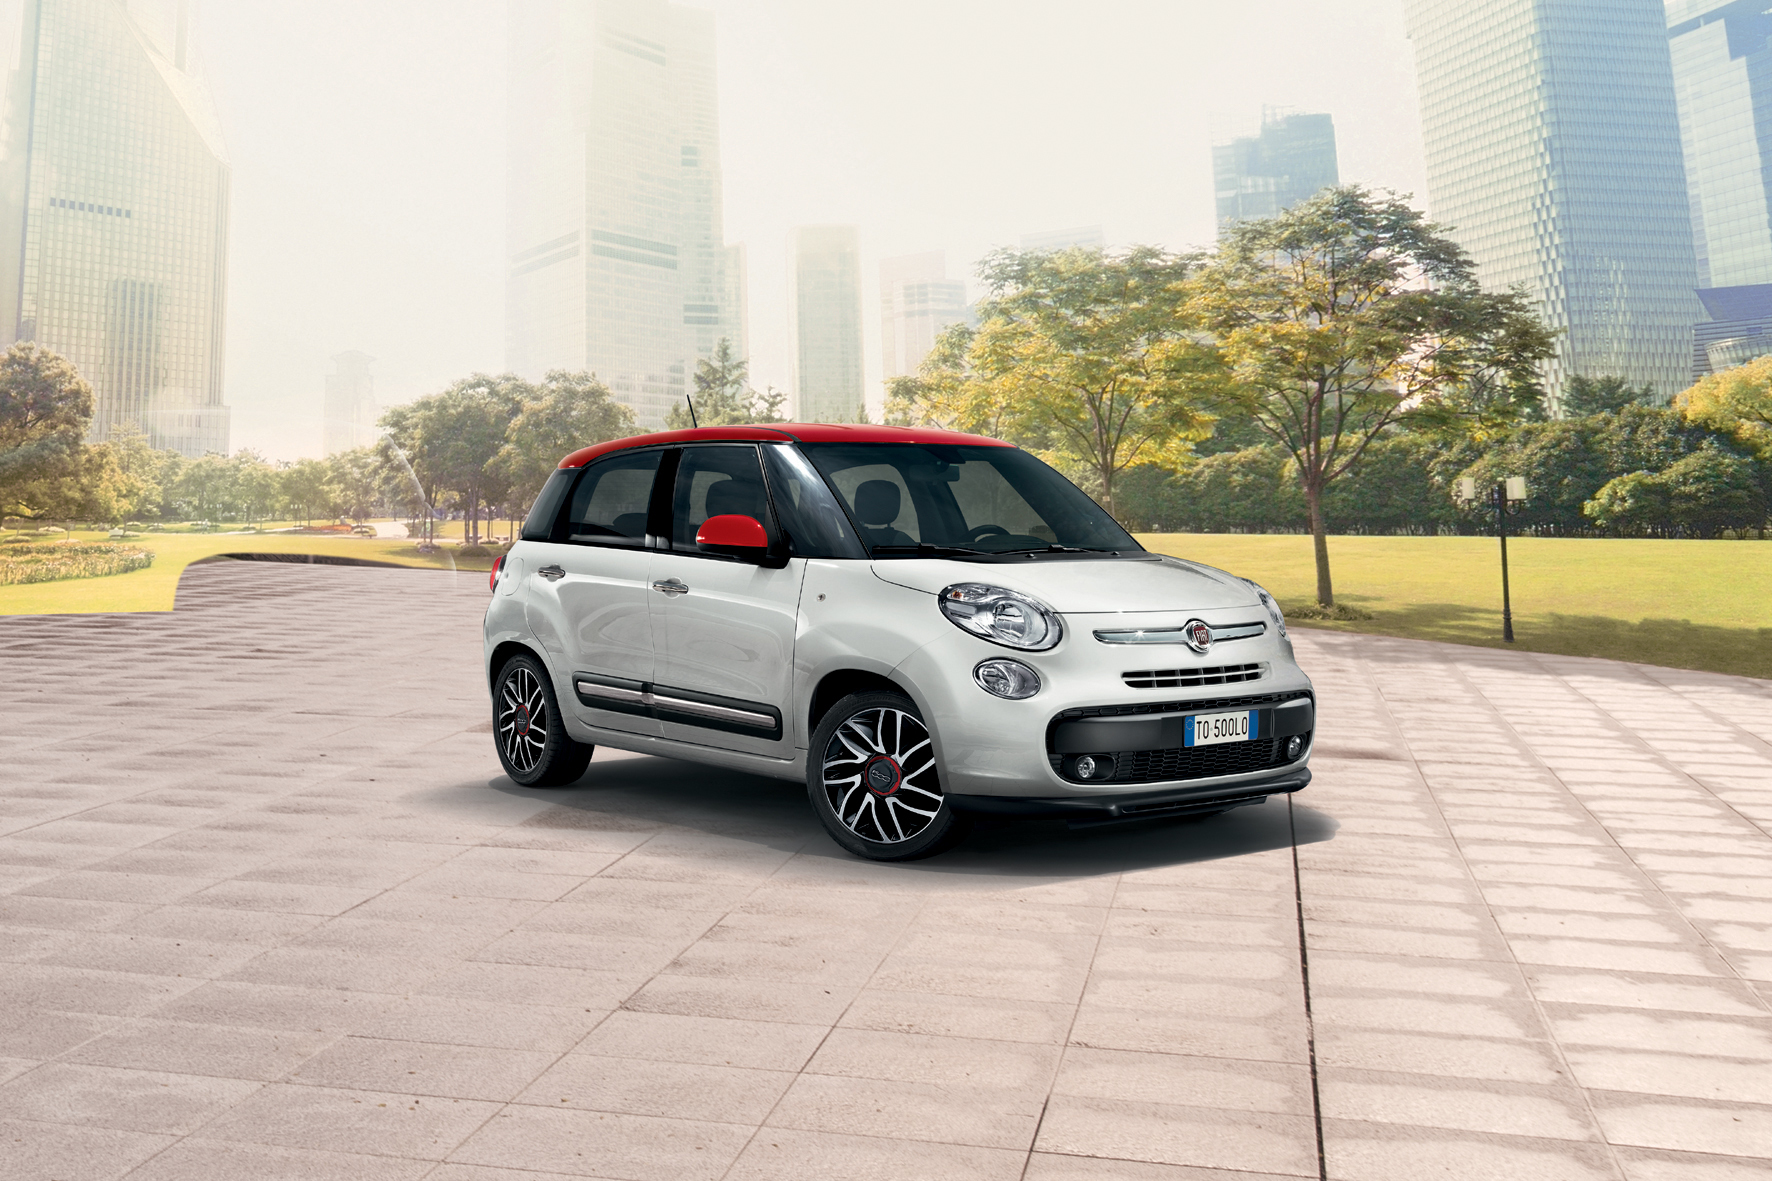 fiat 500l urban edition mit stil in die stadt aktuelles auto fnweb. Black Bedroom Furniture Sets. Home Design Ideas